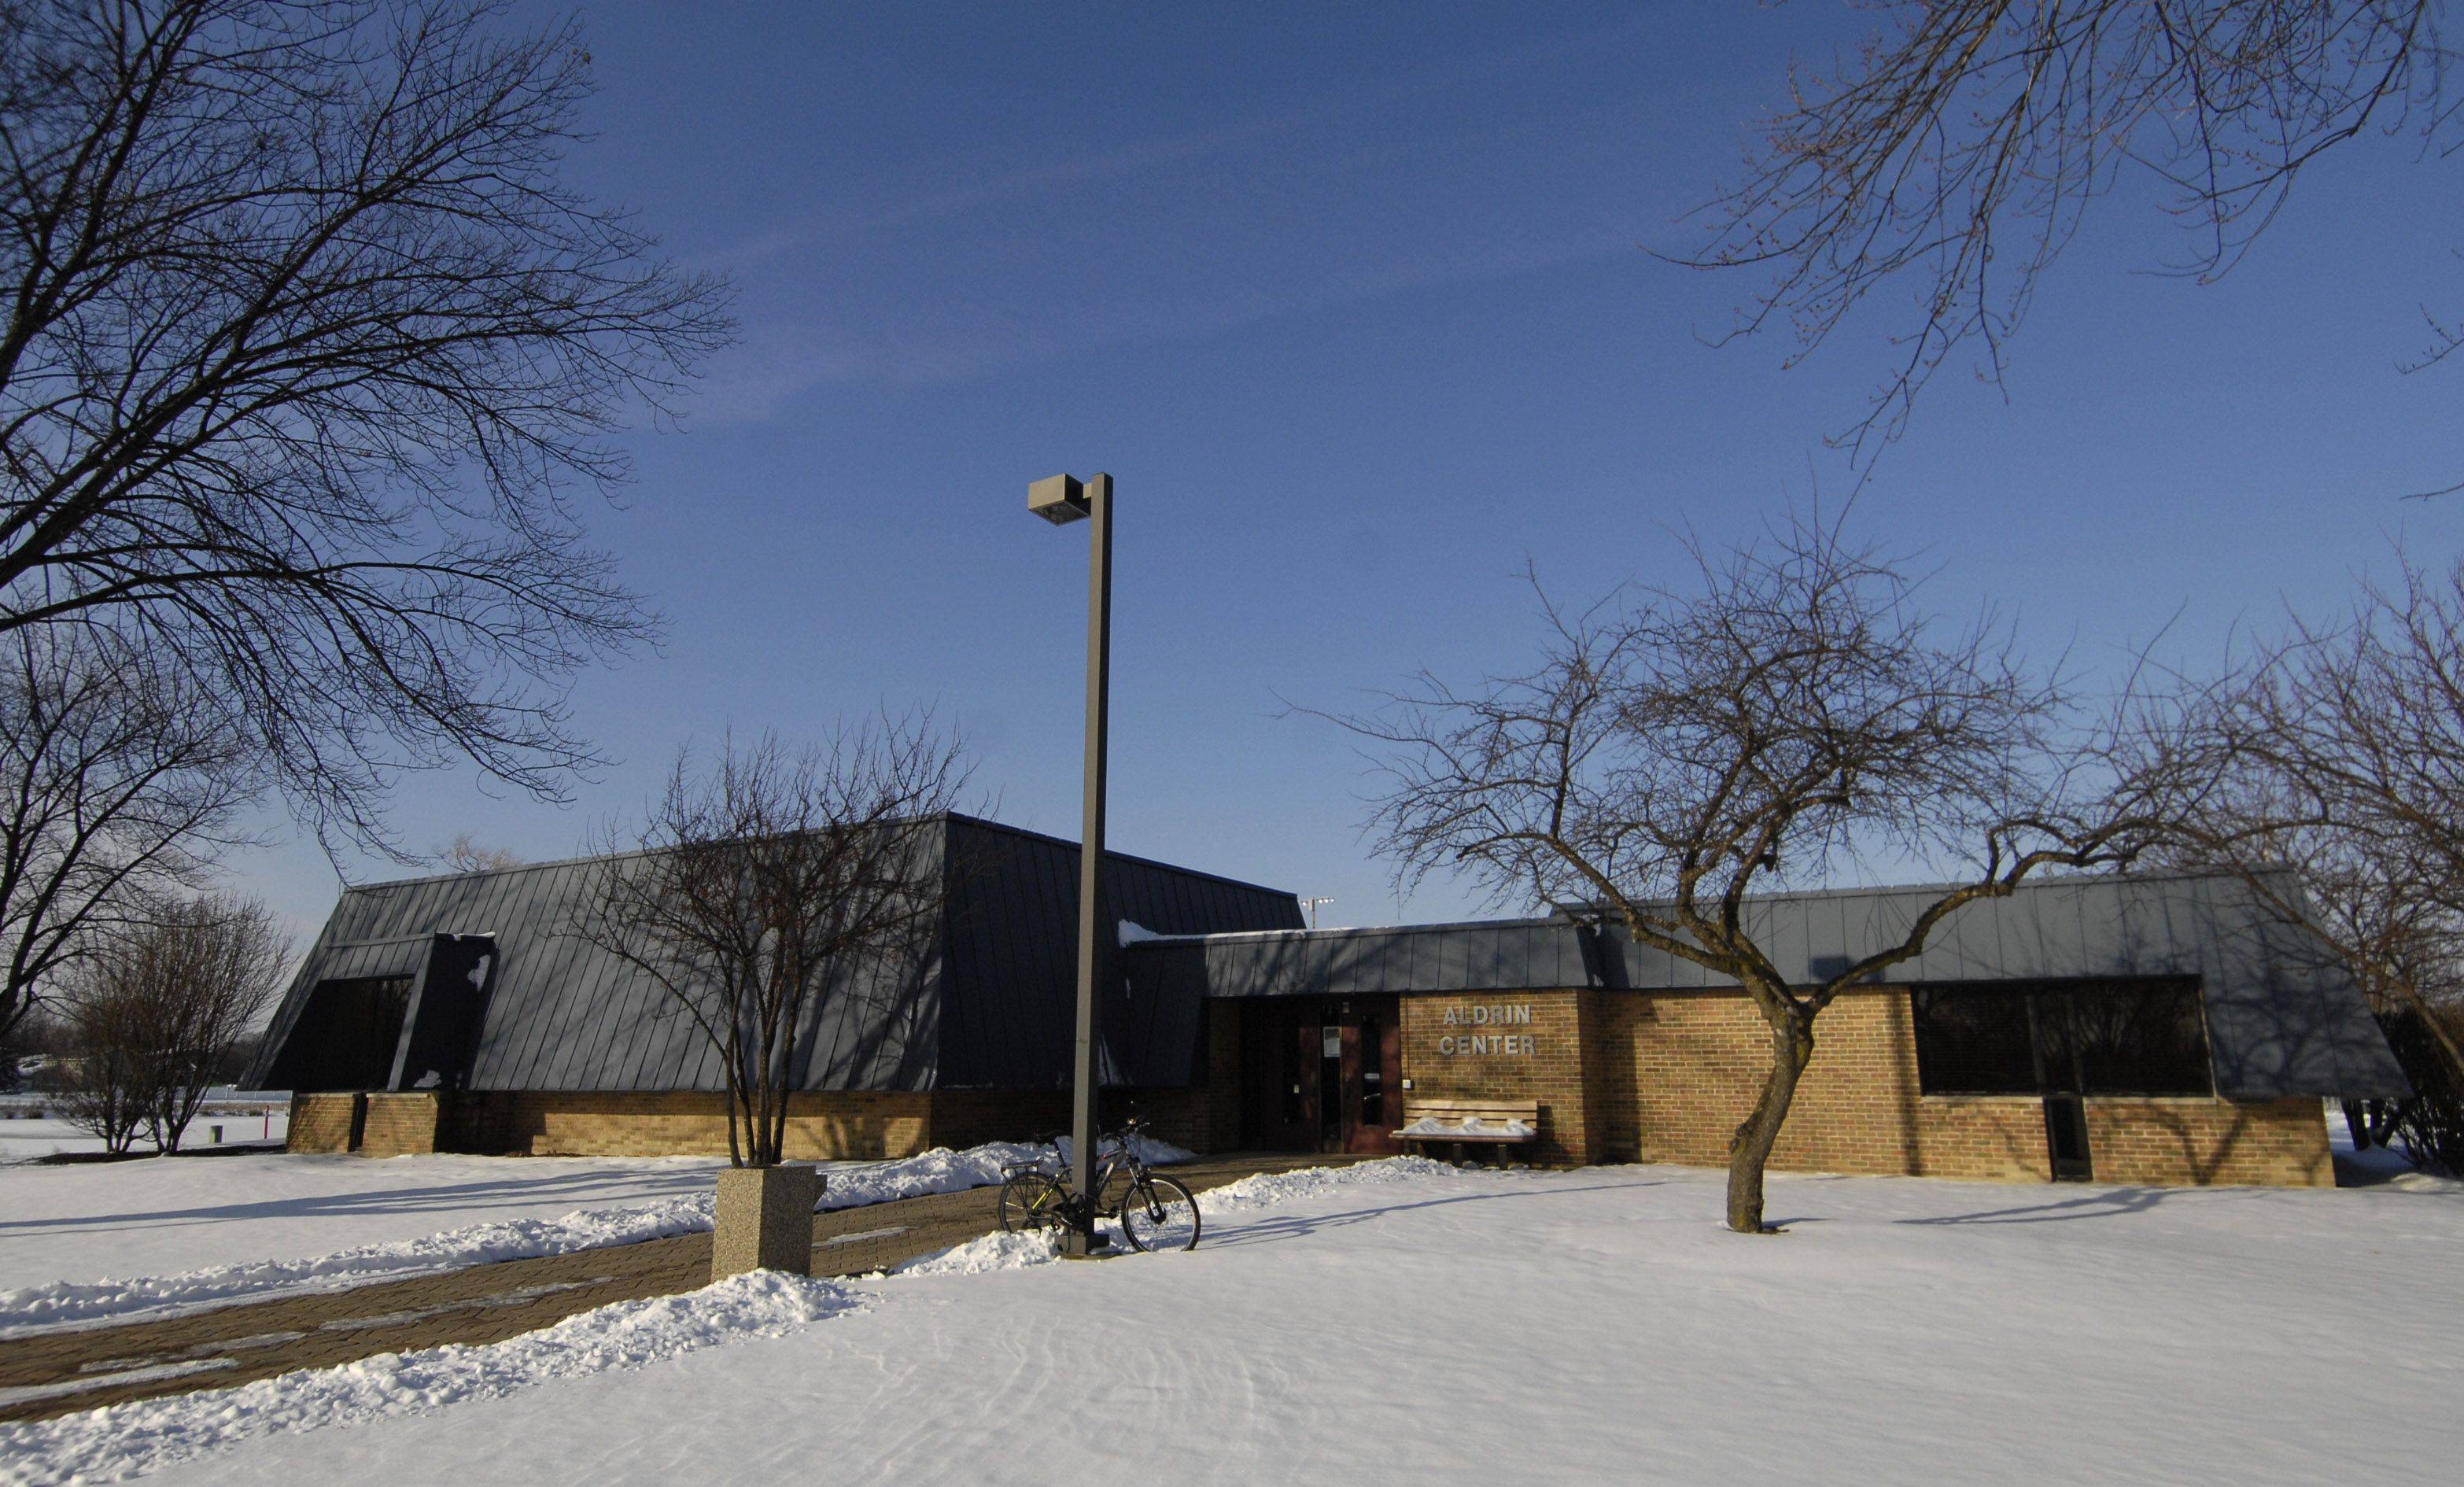 The Aldrin Community Center at Armstrong Park in Carol Stream will be demolished in early 2012 as part of DuPage County storm water management project in the park.